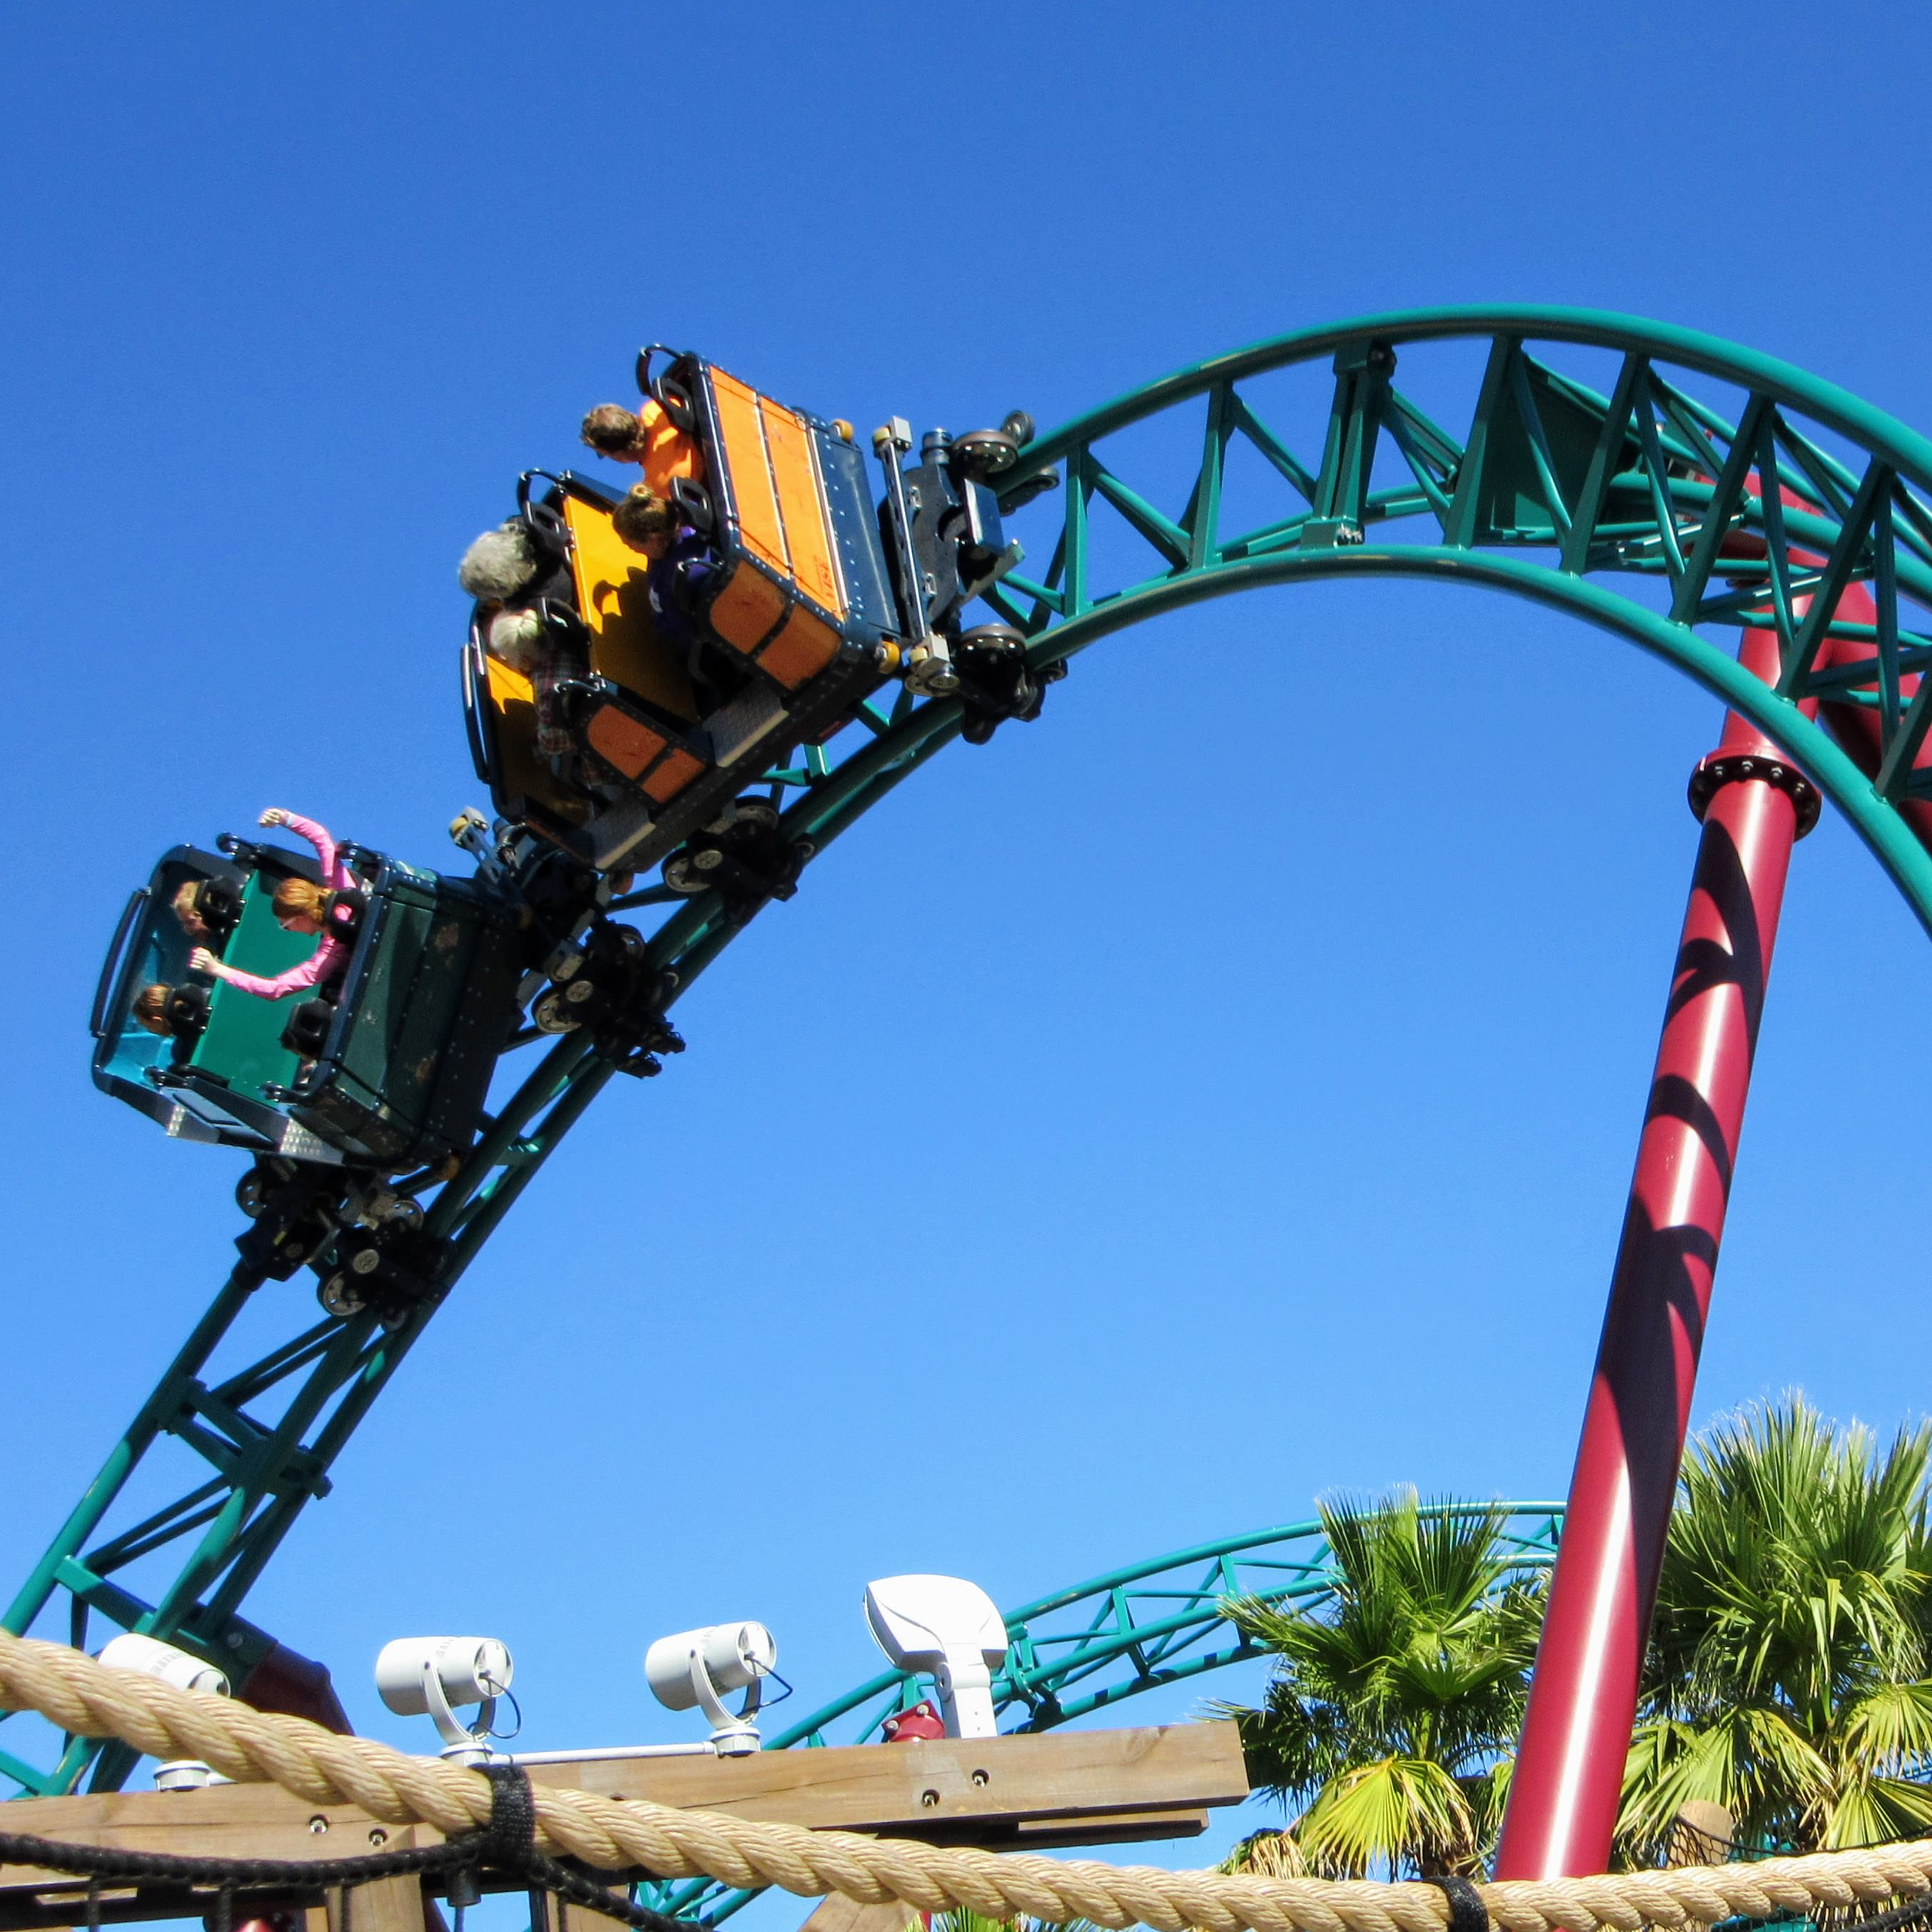 Visiting busch gardens tampa bay a review tips my meena life for Busch gardens tampa bay cobra s curse